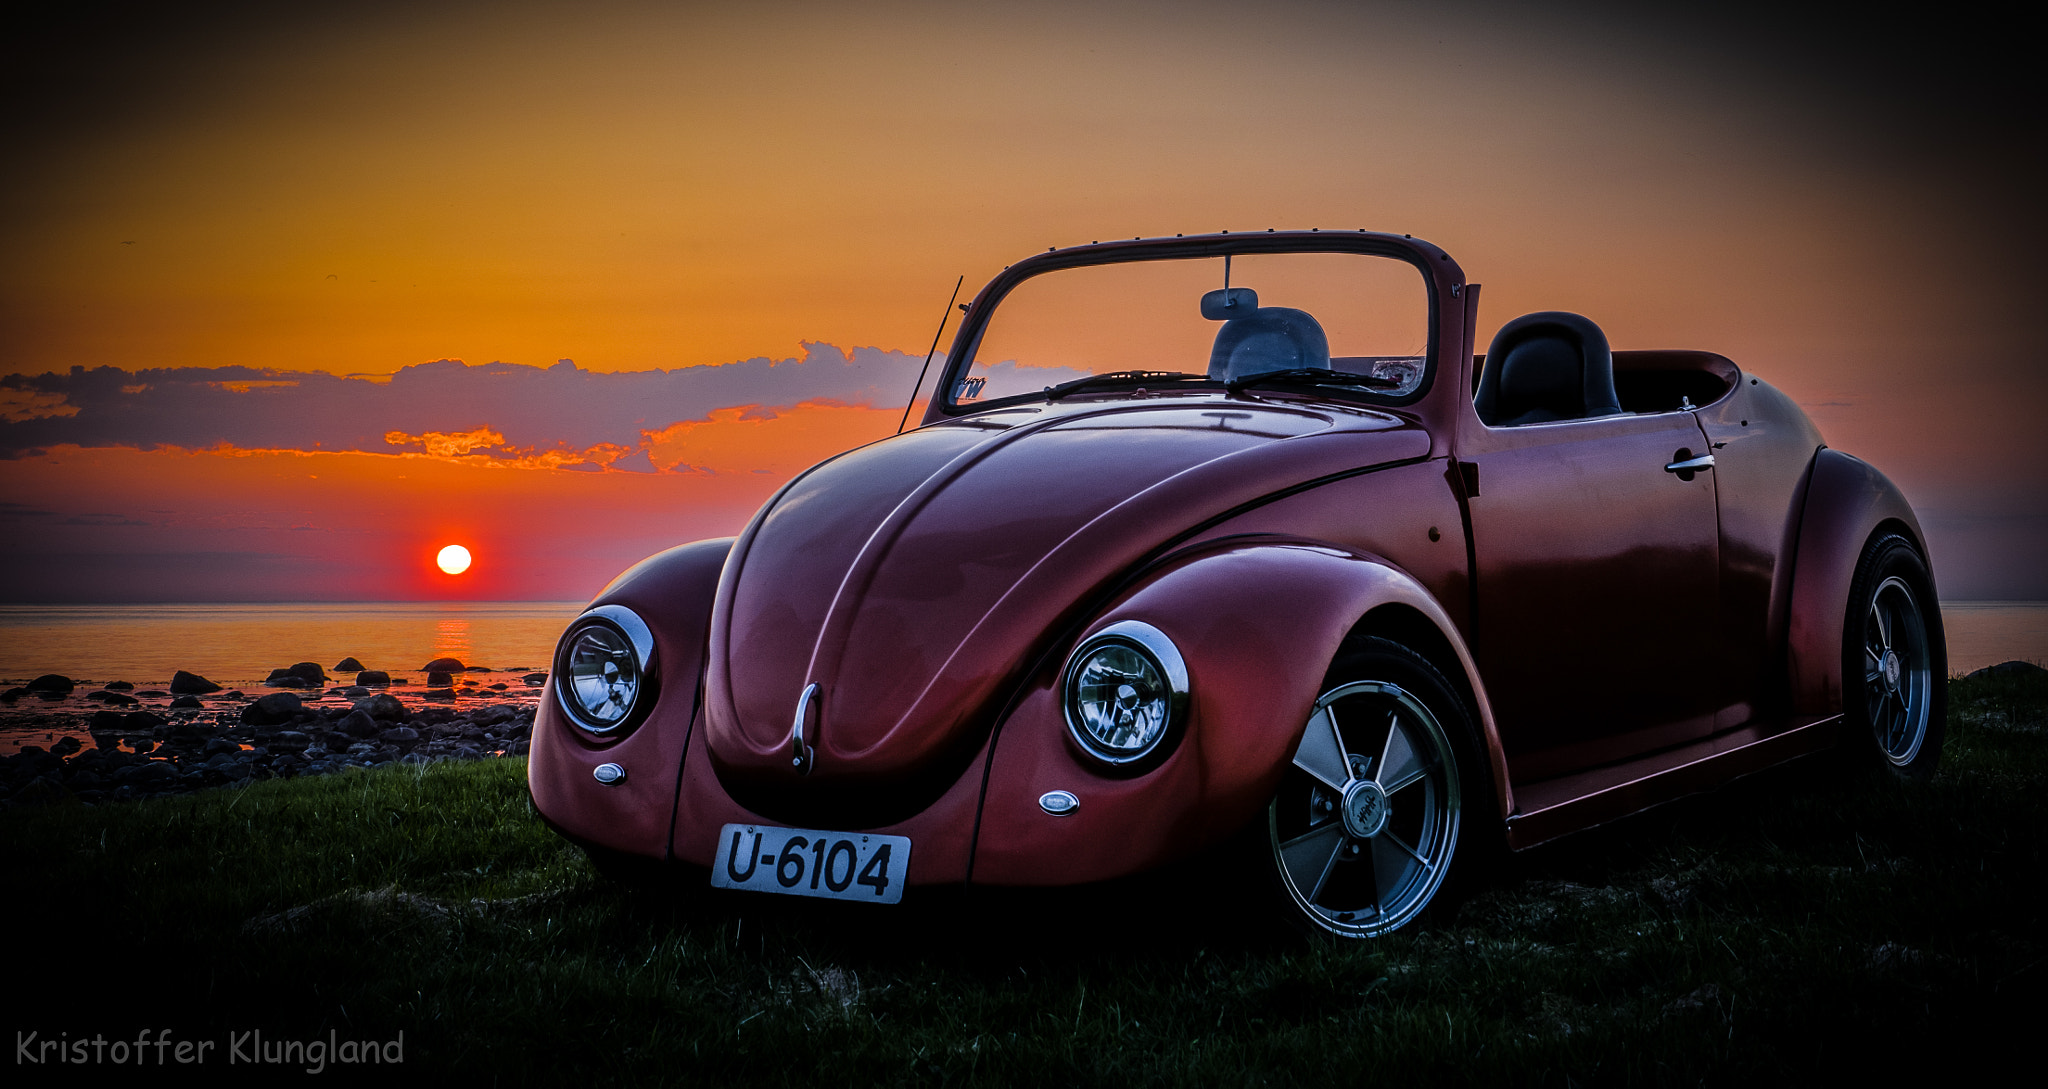 Photograph Beetle in sunset by Kristoffer Klungland on 500px